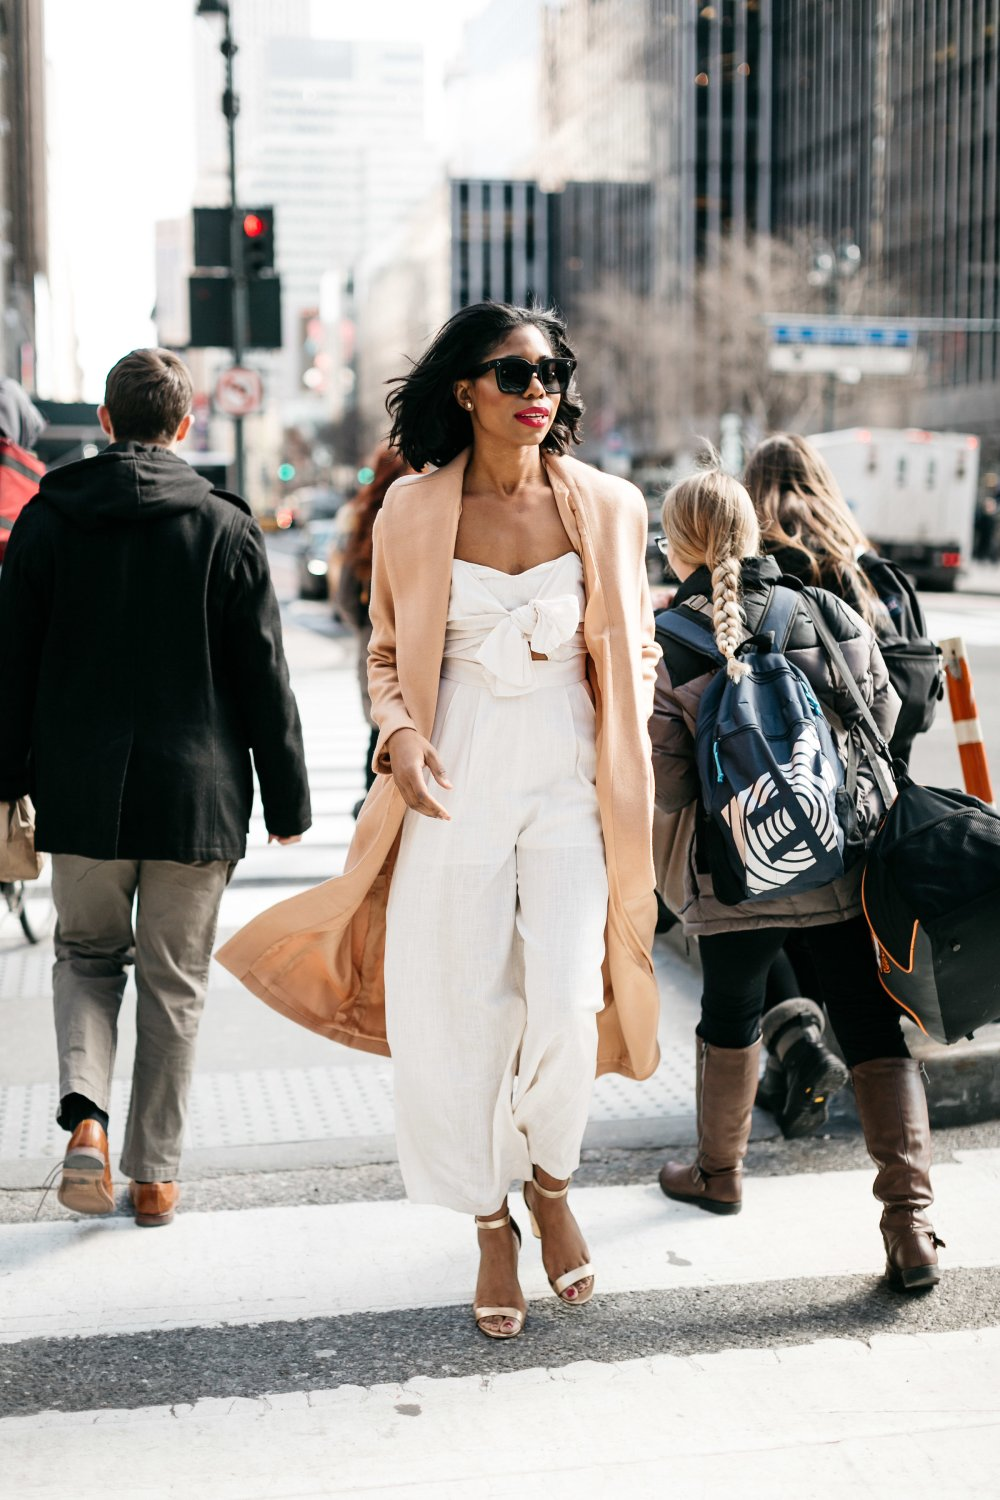 new york fashion week how to attend fashion week nyfw tips and tricks dallas fashion blogger